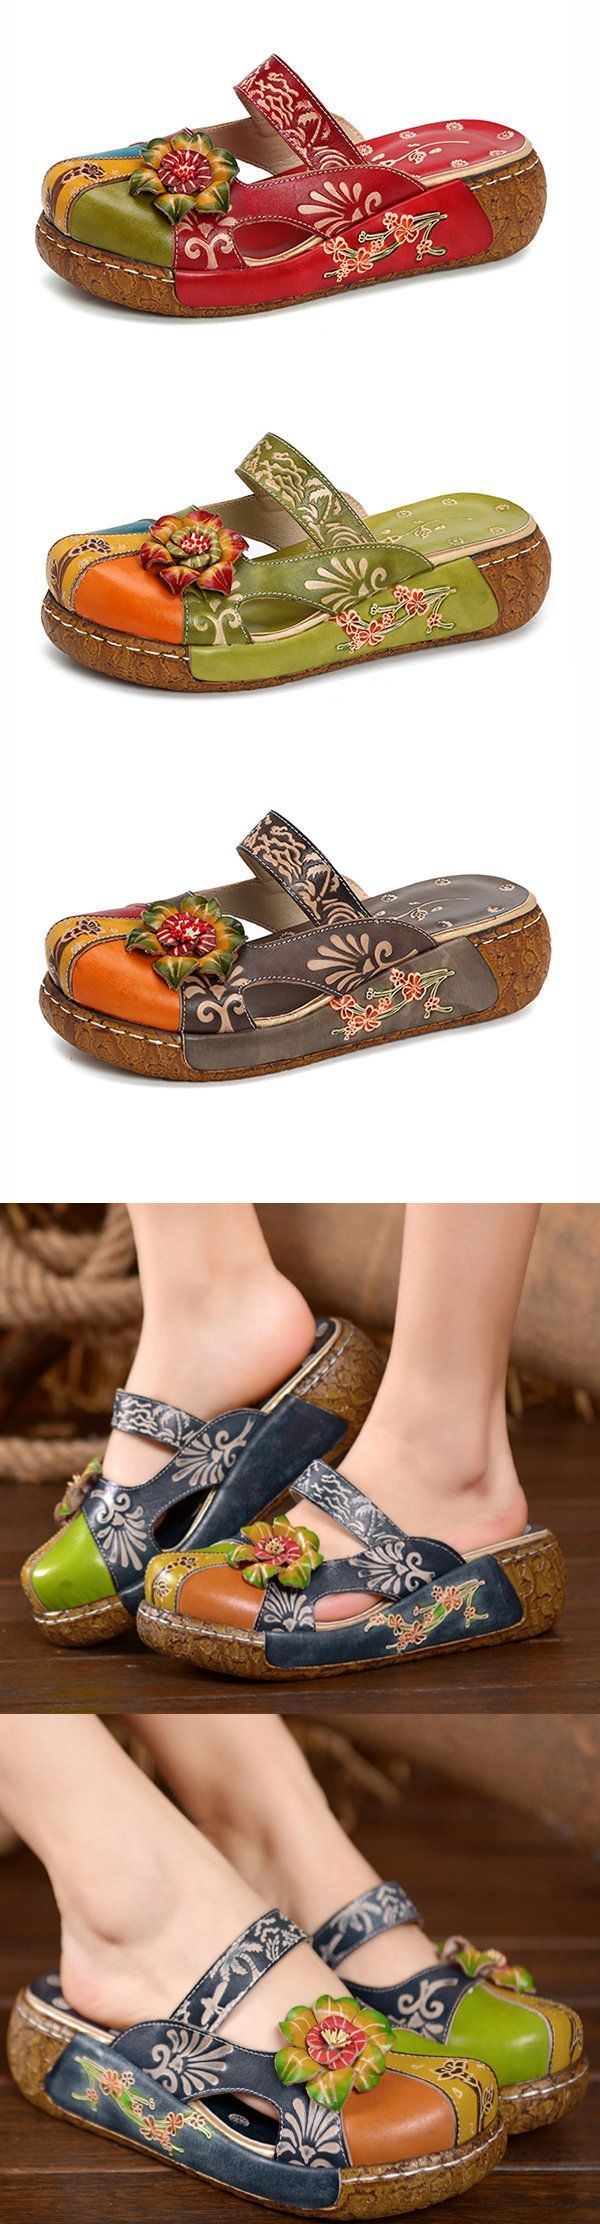 SOCOFY Vintage Colorful Leather Hollow Out Backless Flower Shoes#summer #shopping #shoes